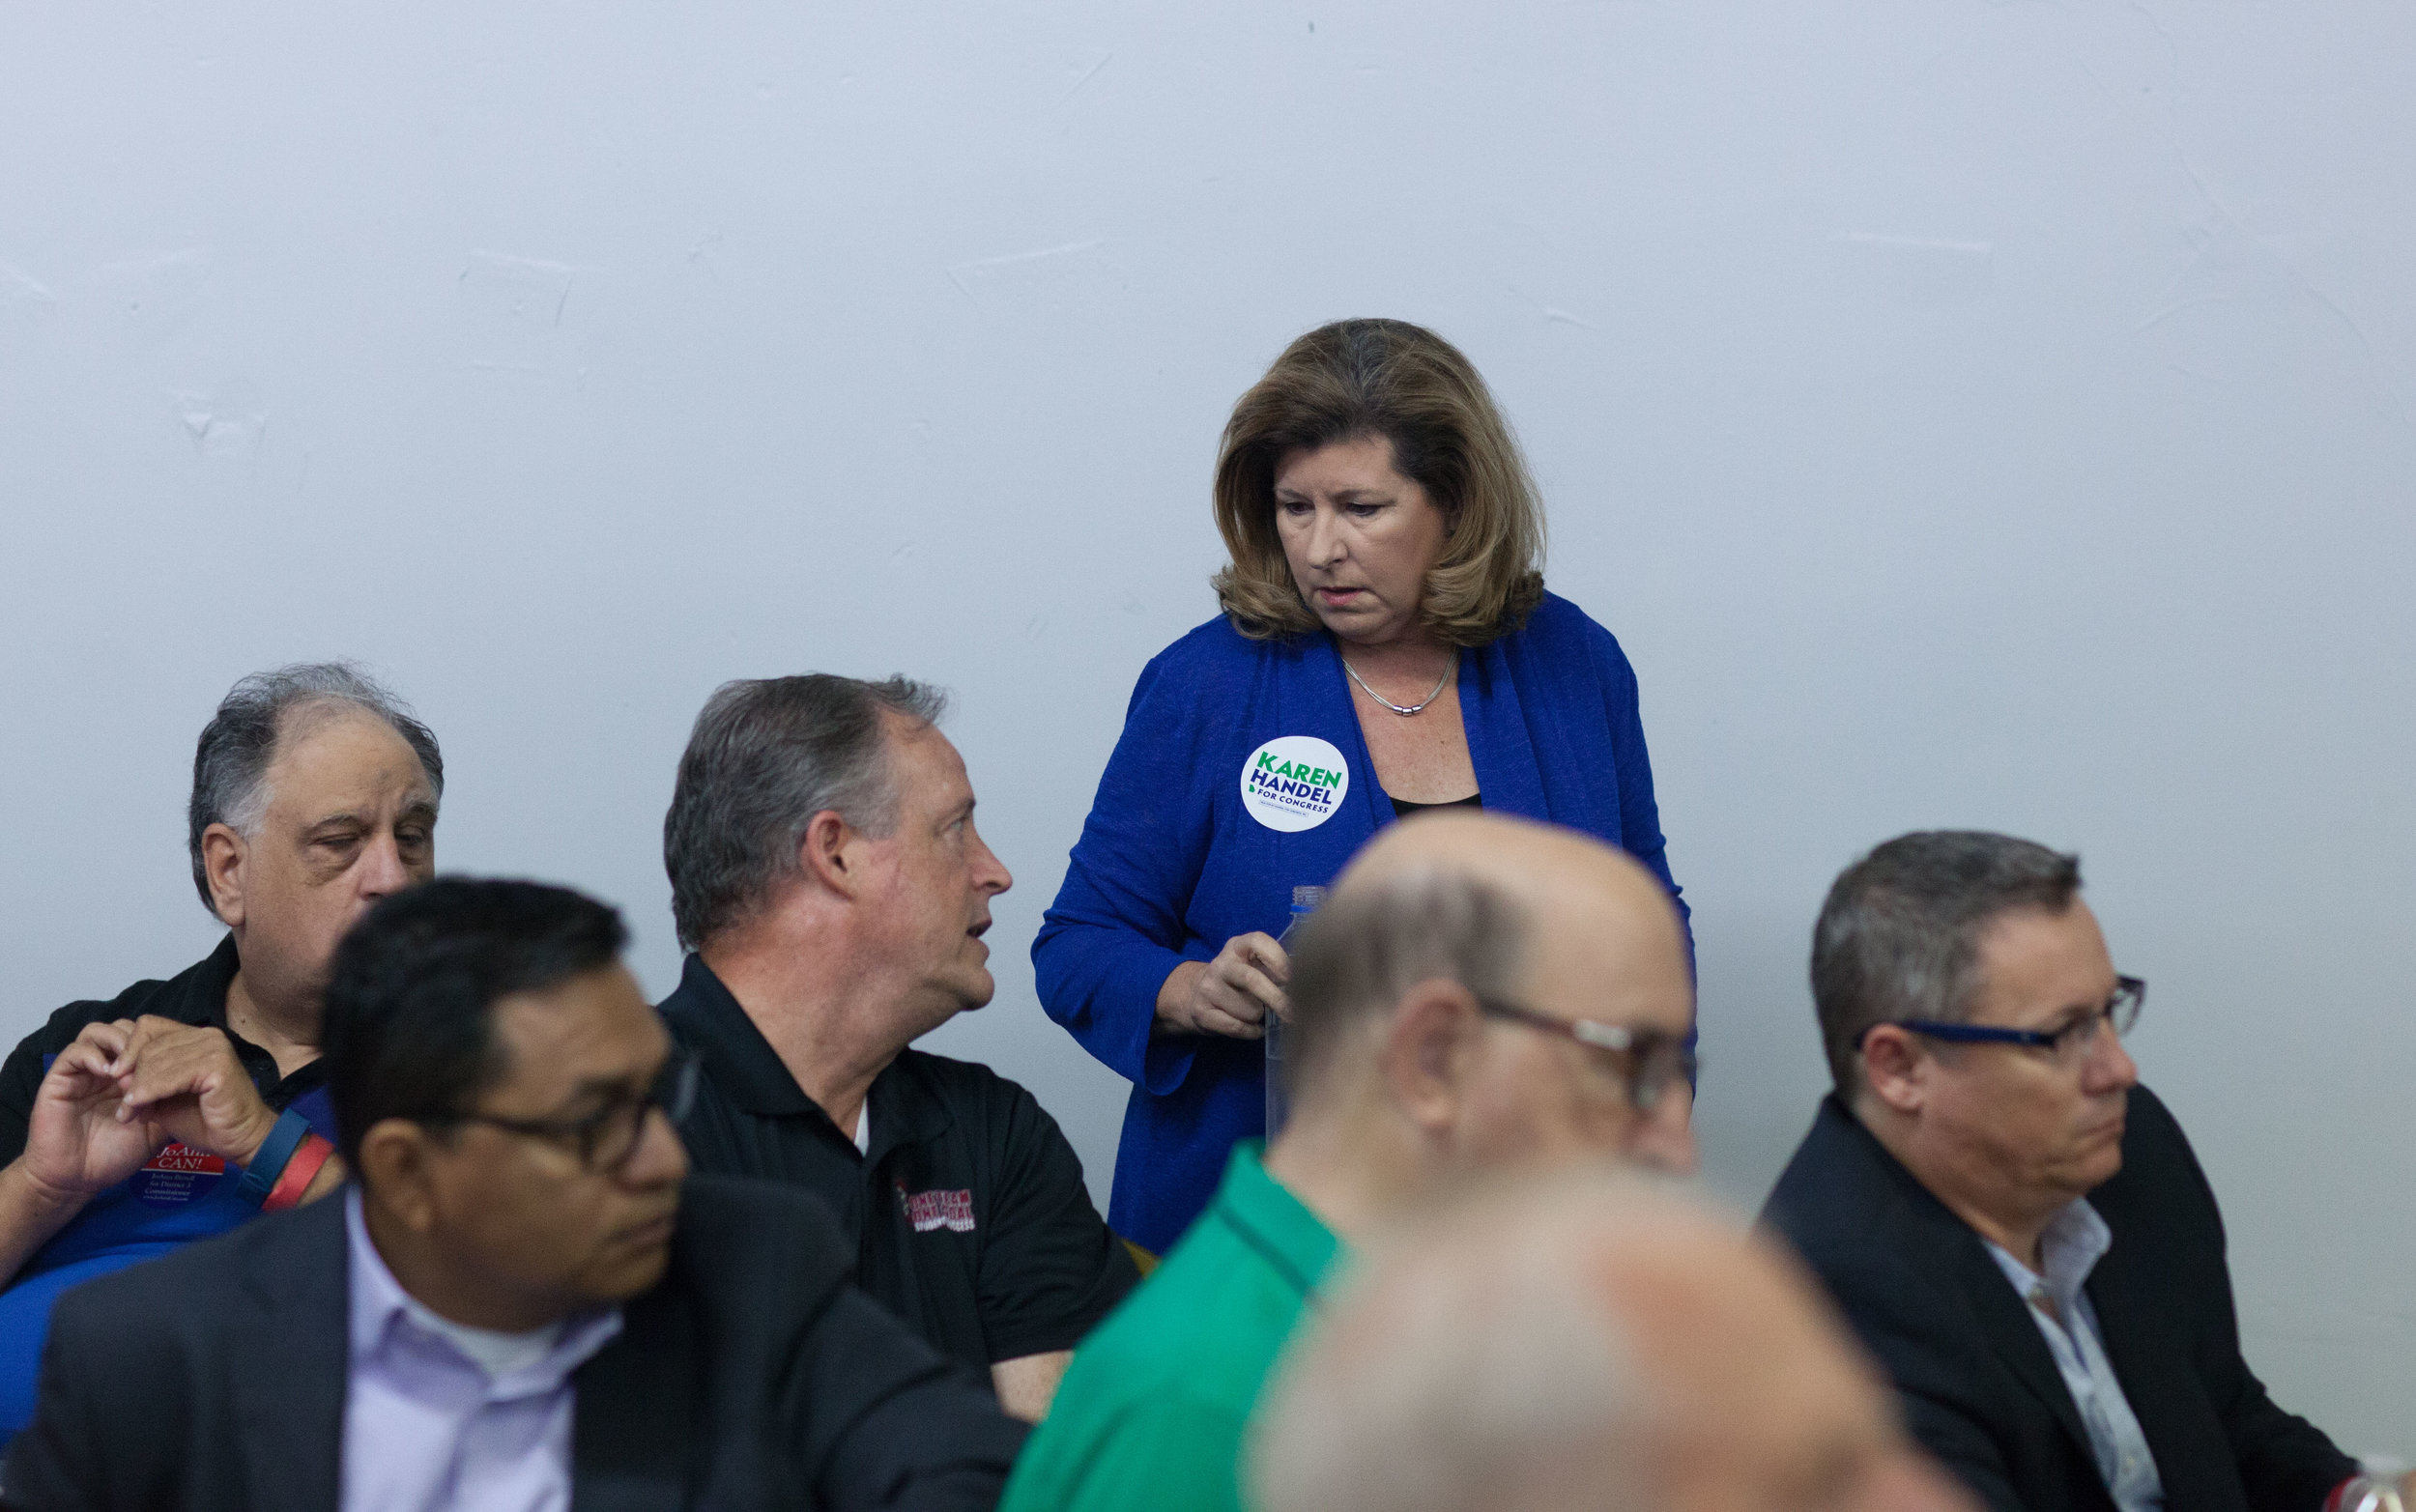 Rep. Karen Handel greets guest during a breakfast meet and greet at the Cobb County GOP headquarters, Saturday, Oct.6, 2018, in Marietta, Ga.